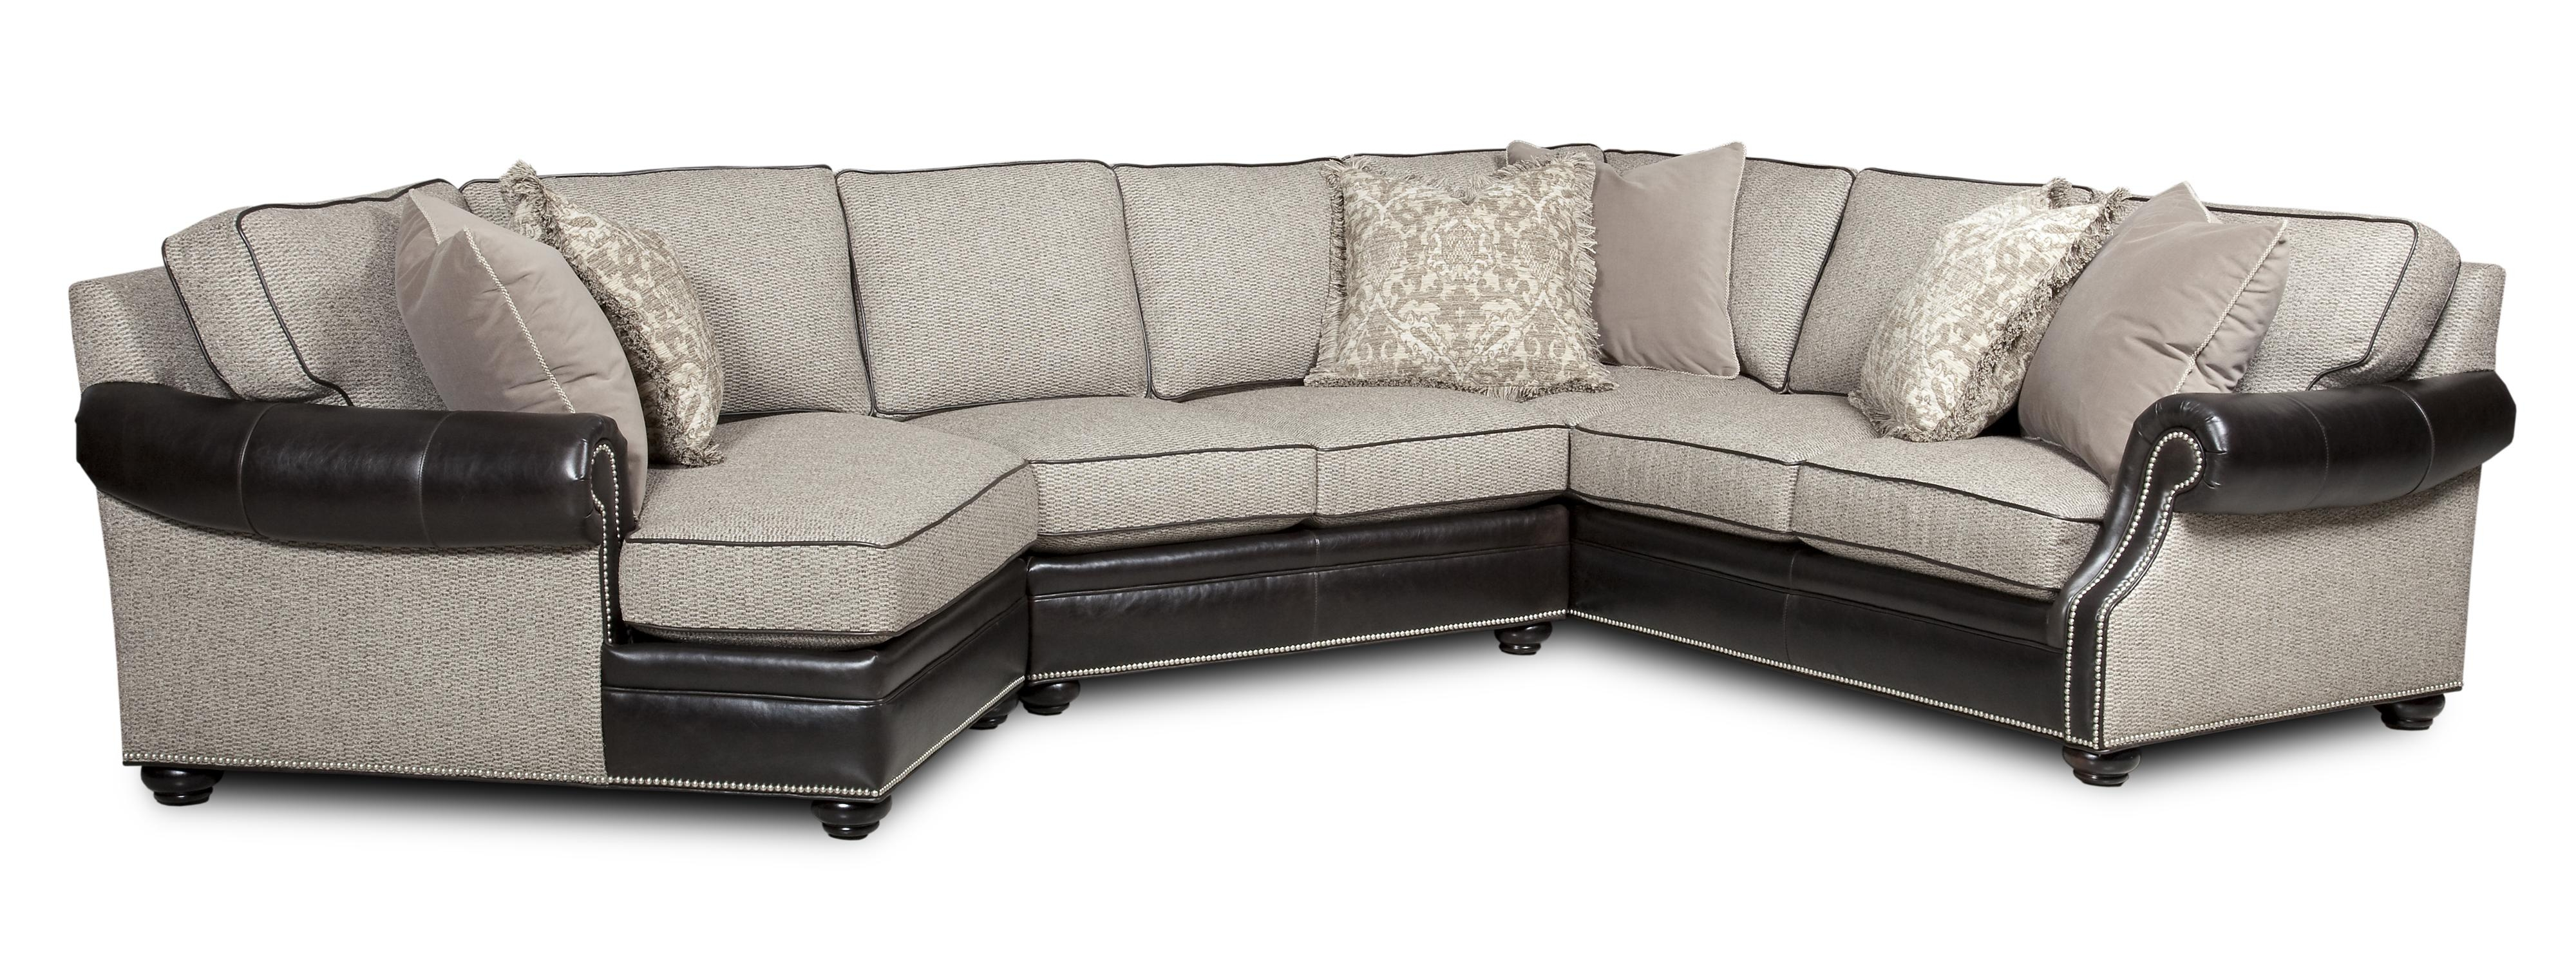 Bradington Young Warner Three Piece Sectional Sofa With Laf With Regard To Cuddler Sectional Sofa (Image 4 of 15)